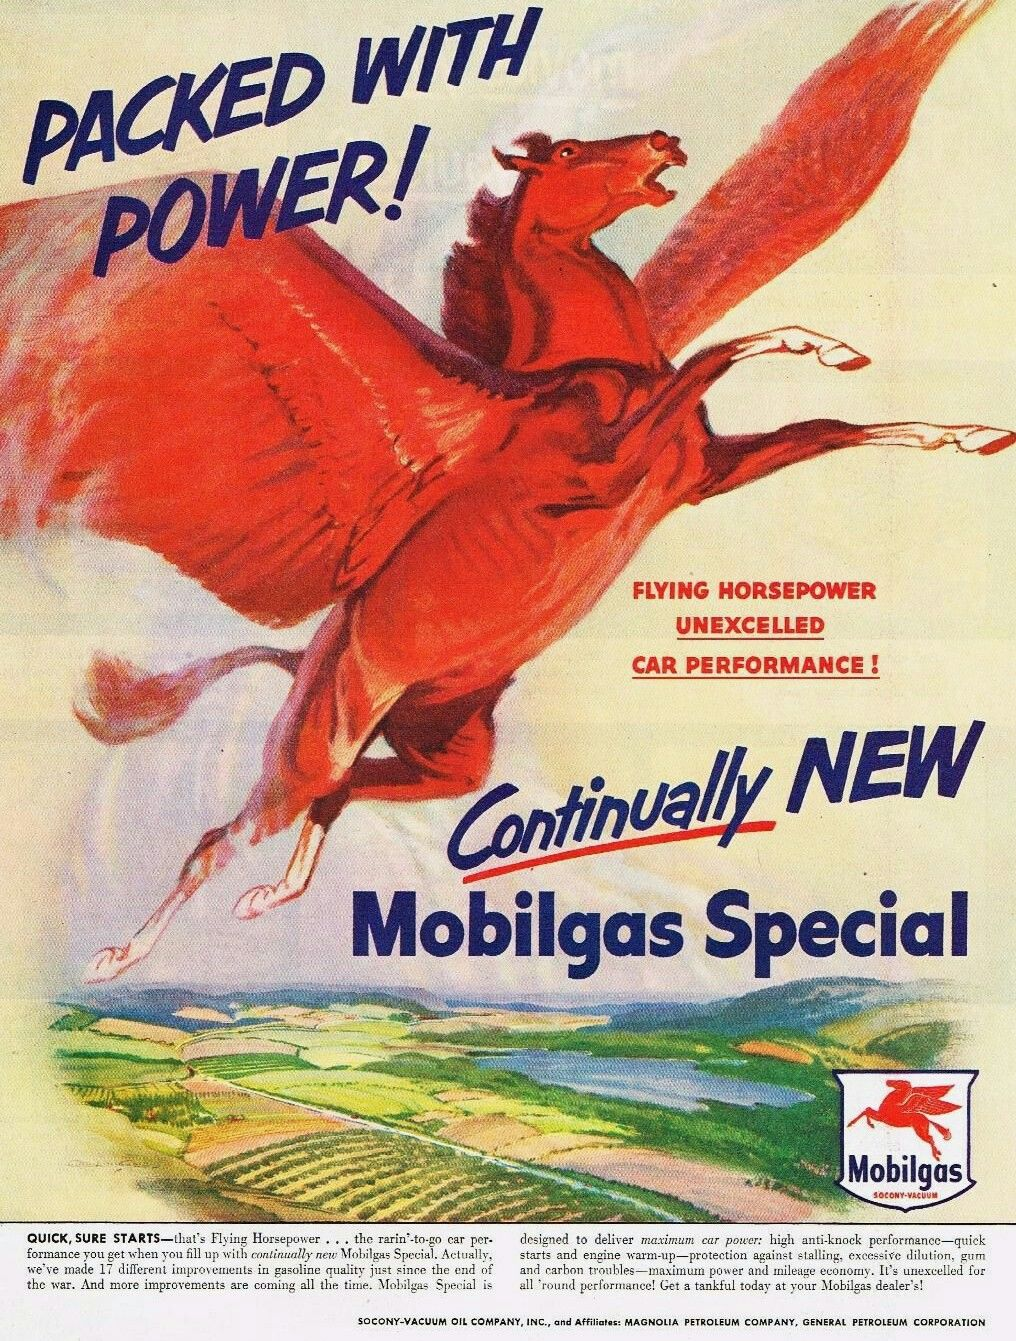 Vintage 1940 Magazine Ad Mobiloil Special Use For The Best Engine Protection 1940-49 Advertising